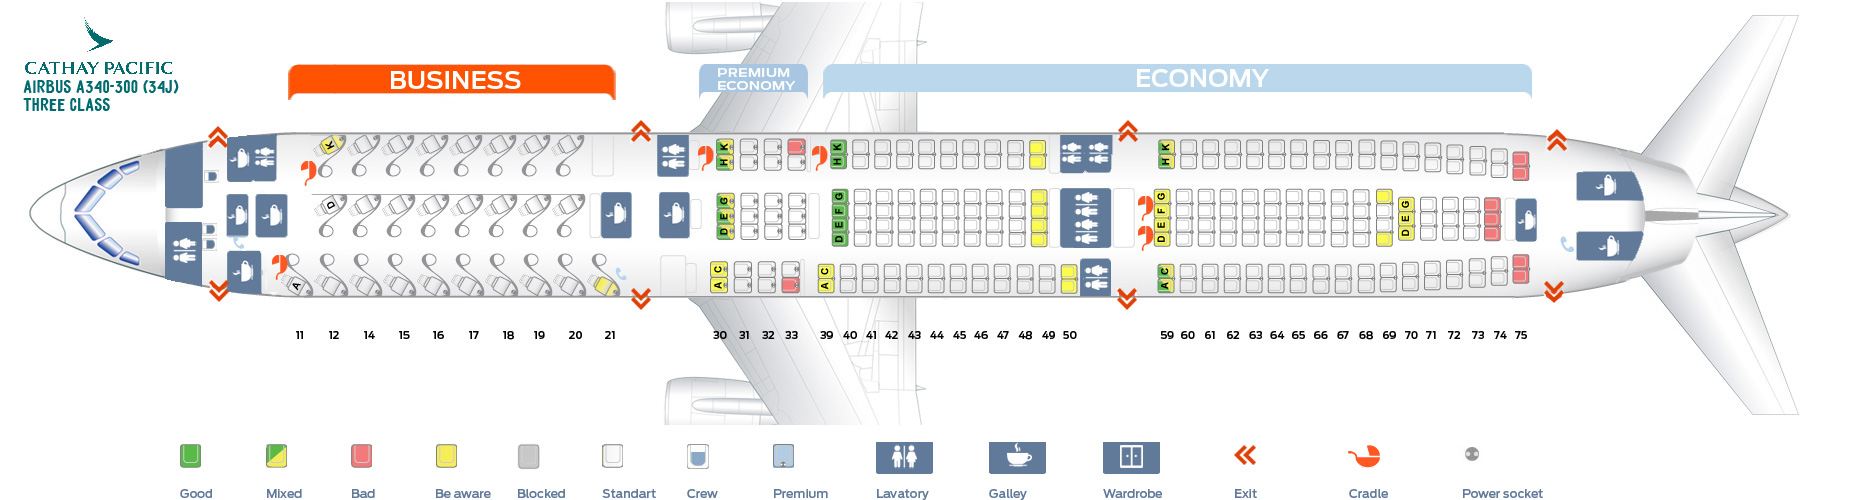 Seat Map Airbus A340-300 Three class Qathay Pacific